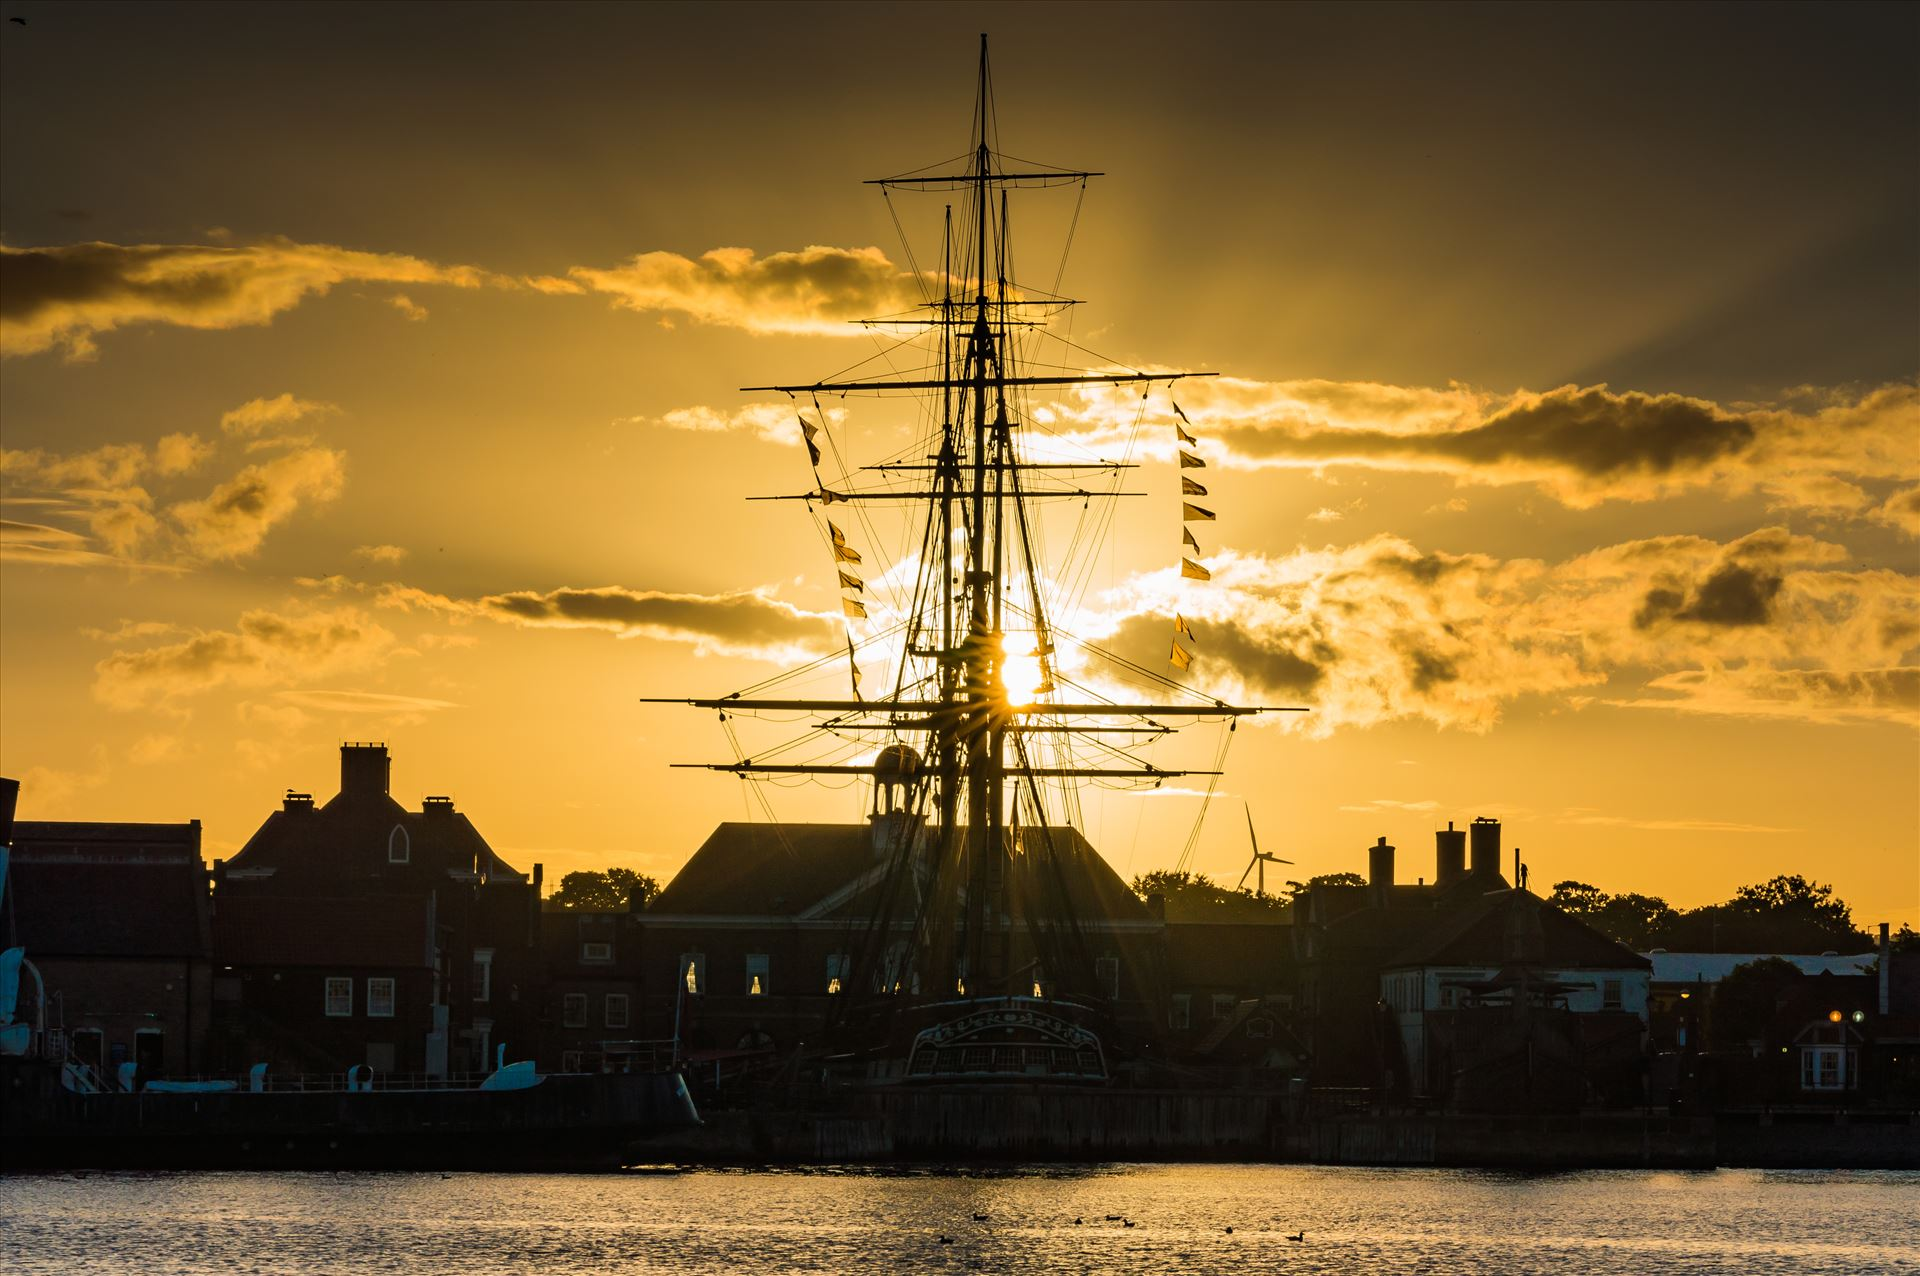 HMS Trincomalee Hartlepool Sunset - HMS Trincomalee at sunset in the lovely seaside town of Hartlepool. by AJ Stoves Photography